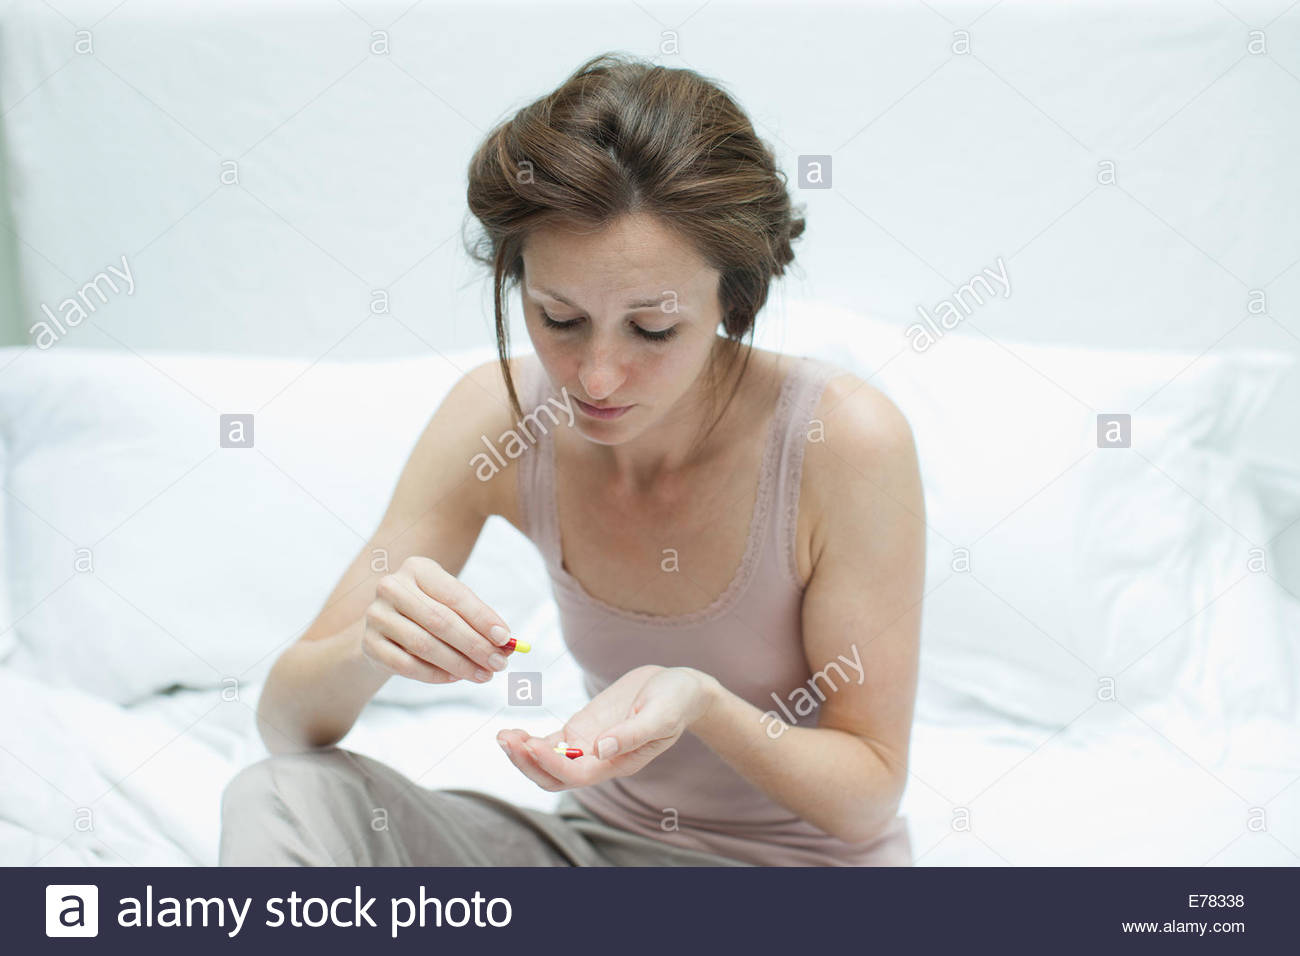 Woman holding pills and counting them - Stock Image